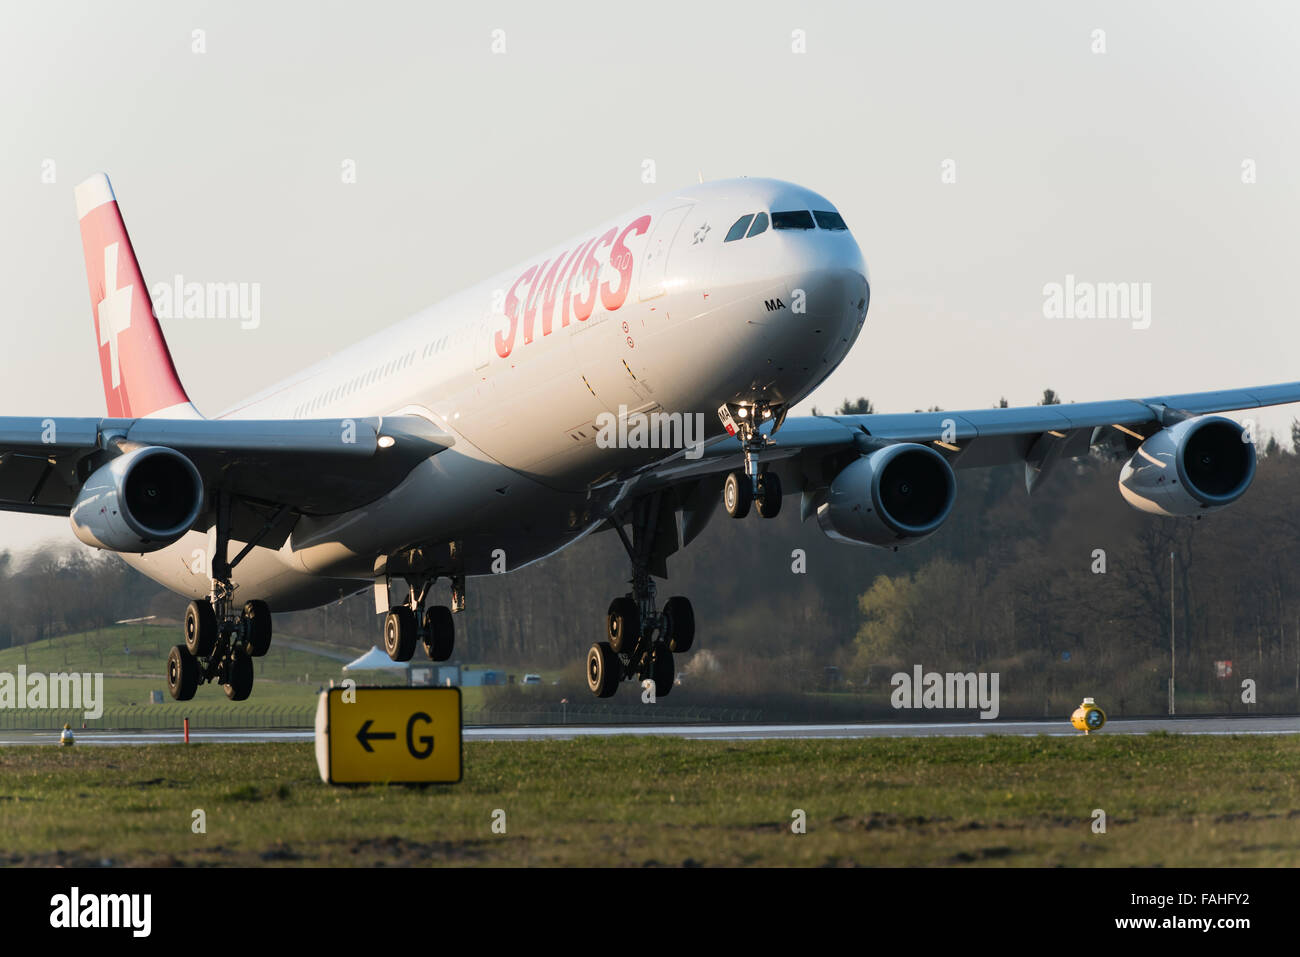 Landing Airbus A340 passenger aircraft of Swiss International Air Lines at Zurich Kloten airport. - Stock Image